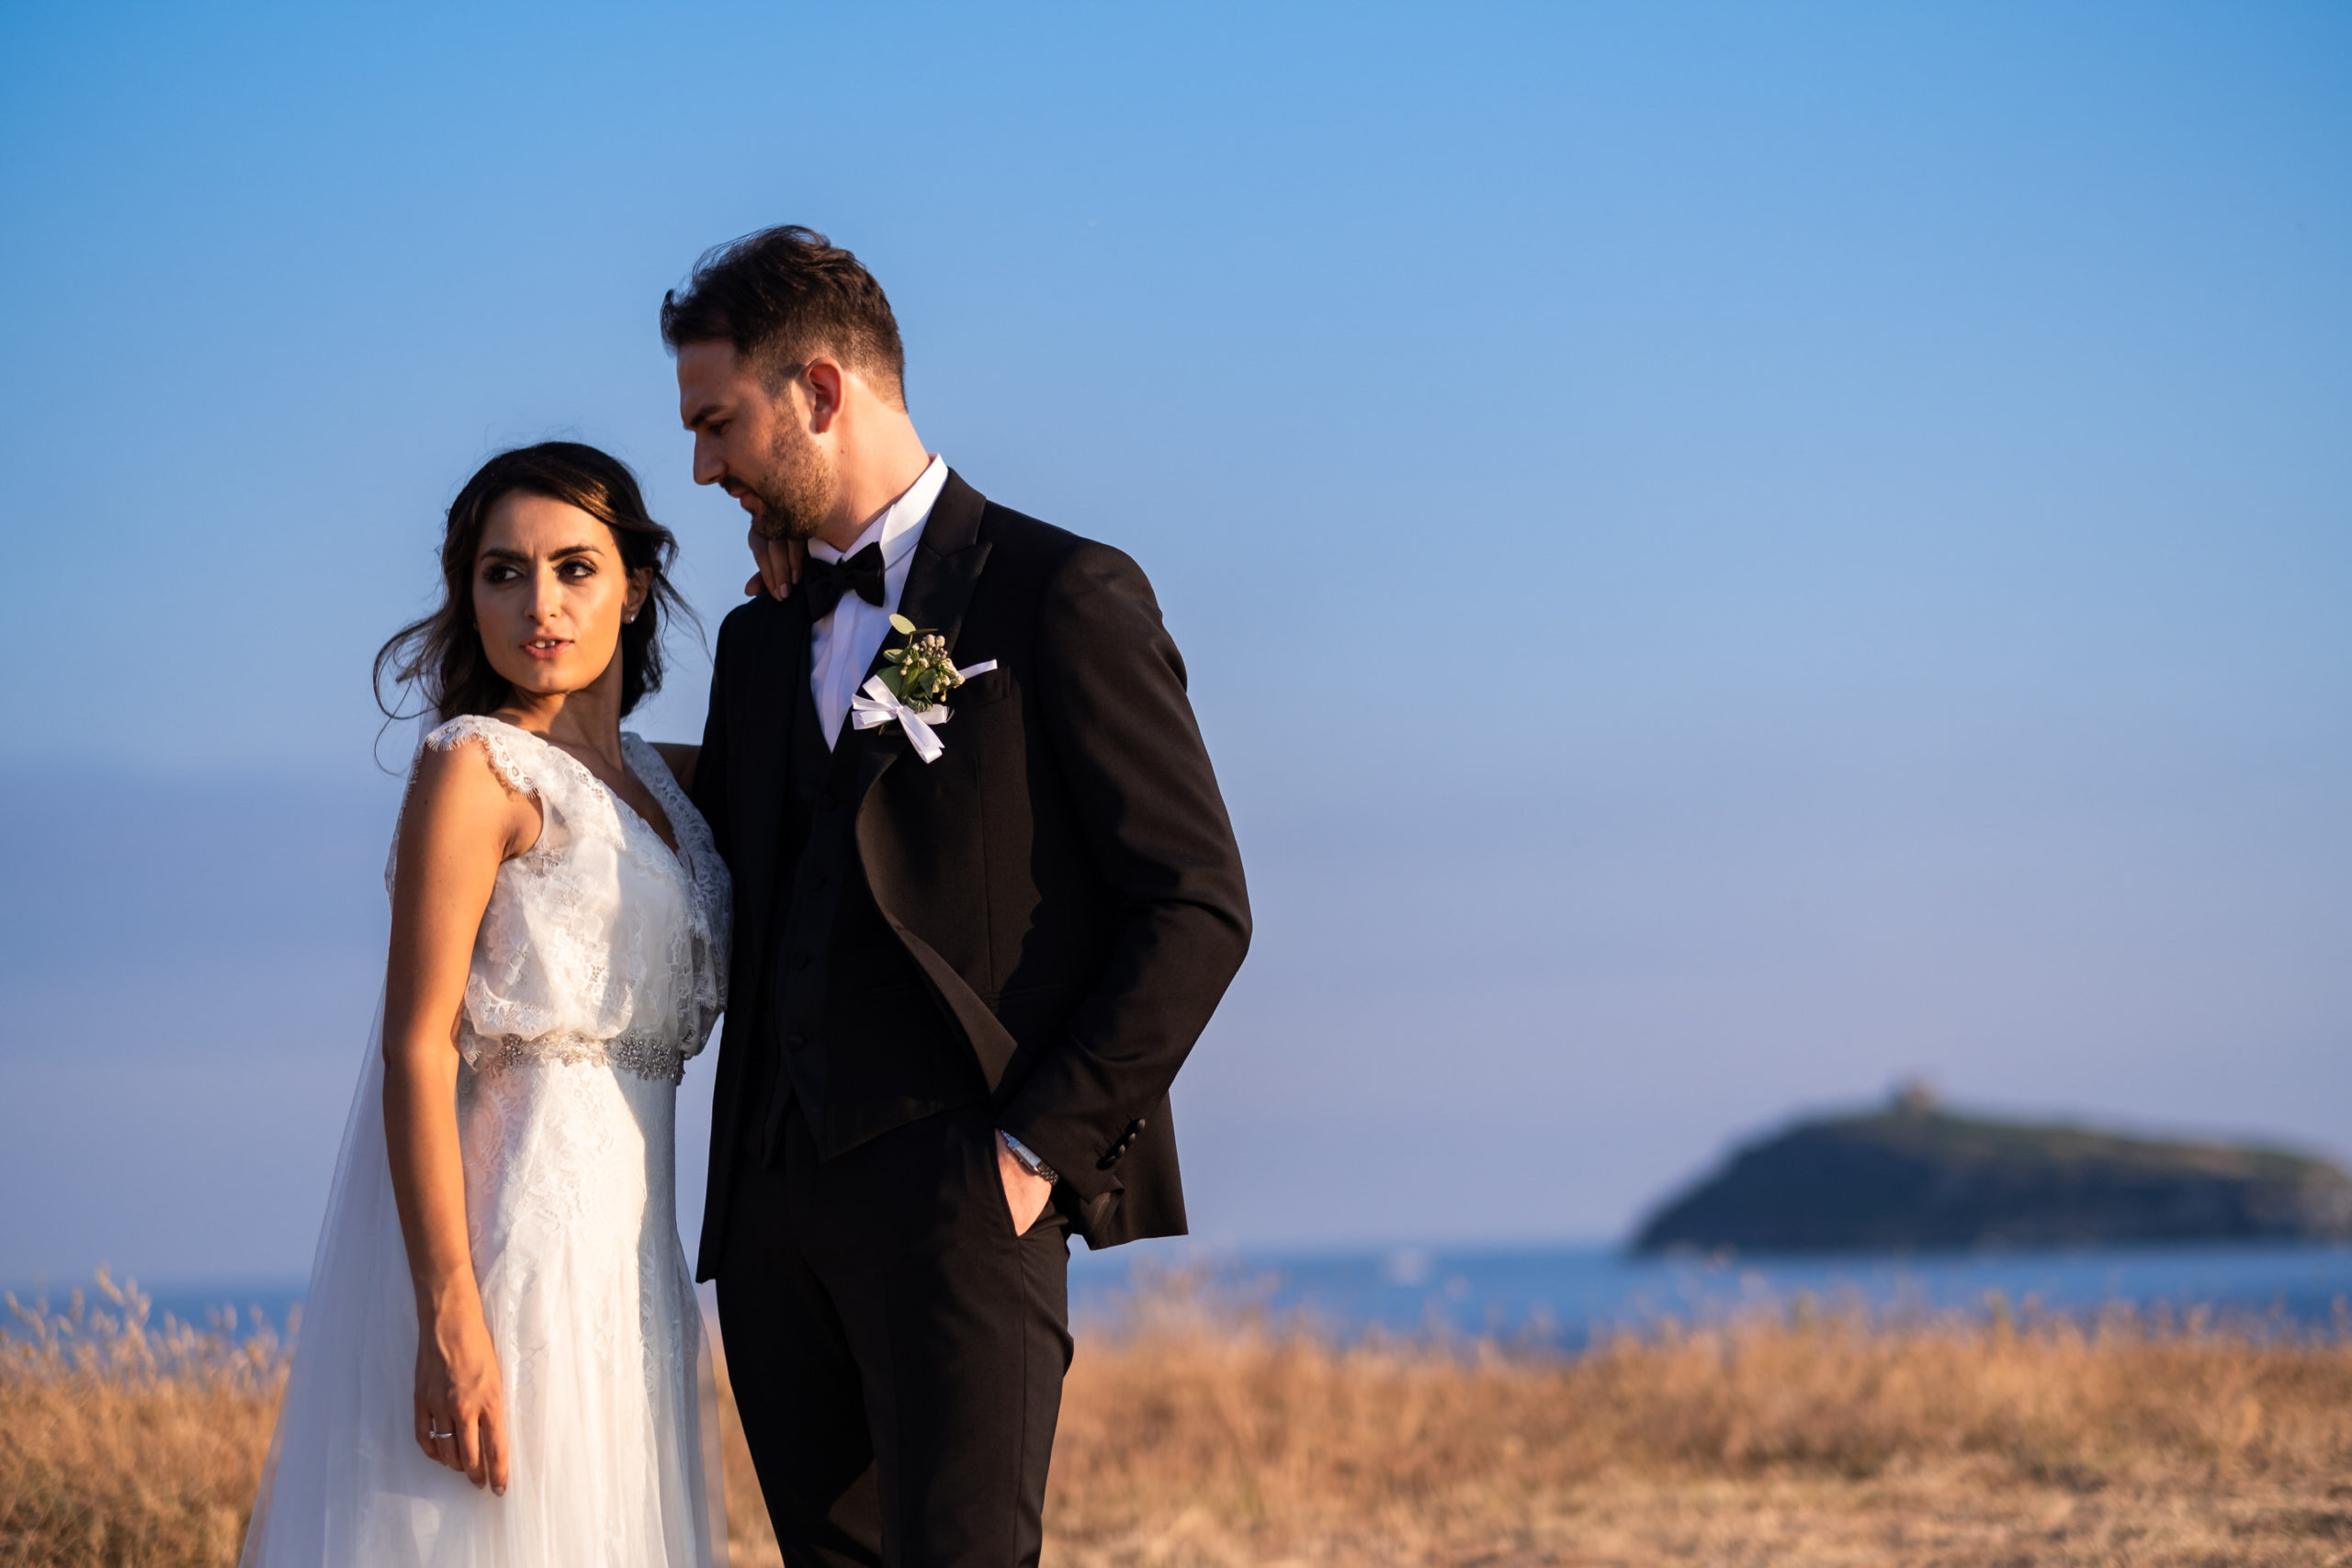 wedding in diamante calabria italy In Front of Isola di Cirella